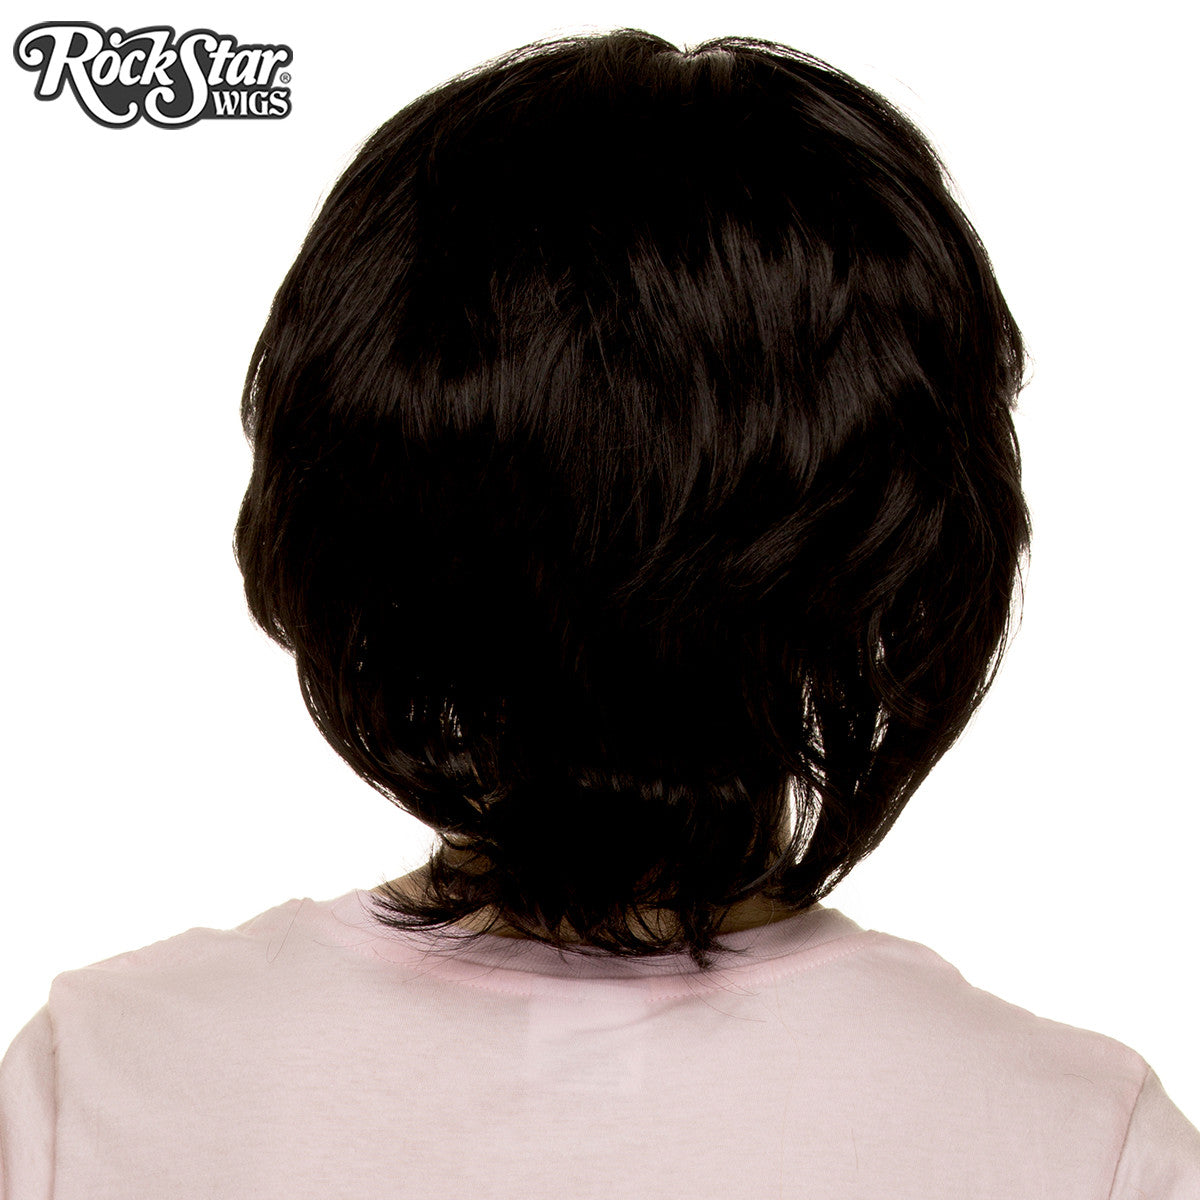 Cosplay Wigs USA™ <br> Boy Cut Short Shag - Black - 00518